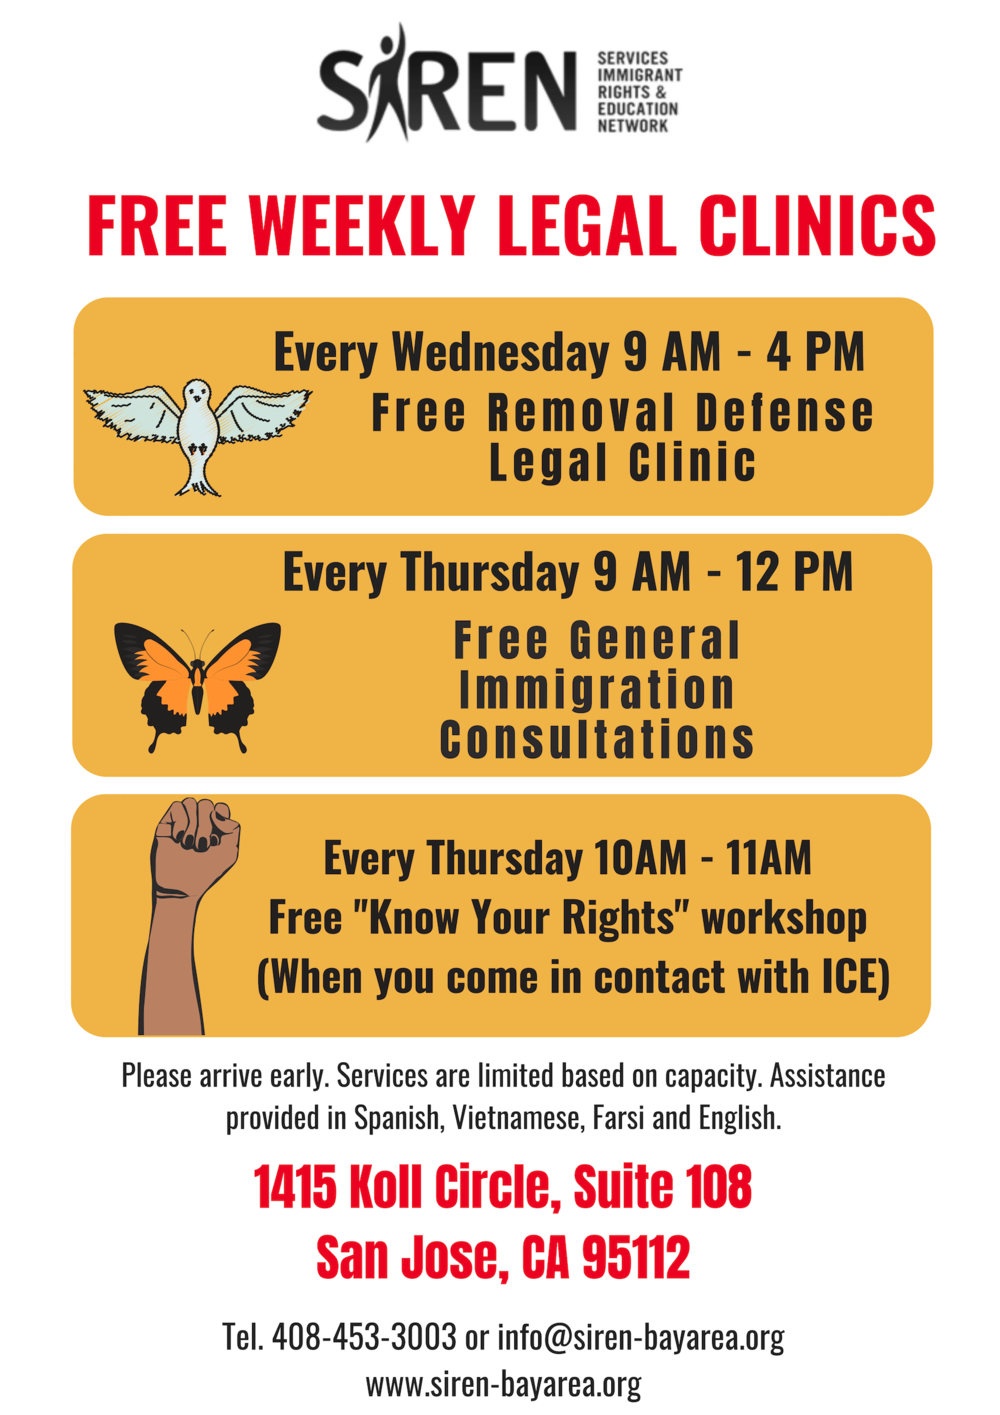 2019 SJ Weekly Clinics Flyer (ENG).png